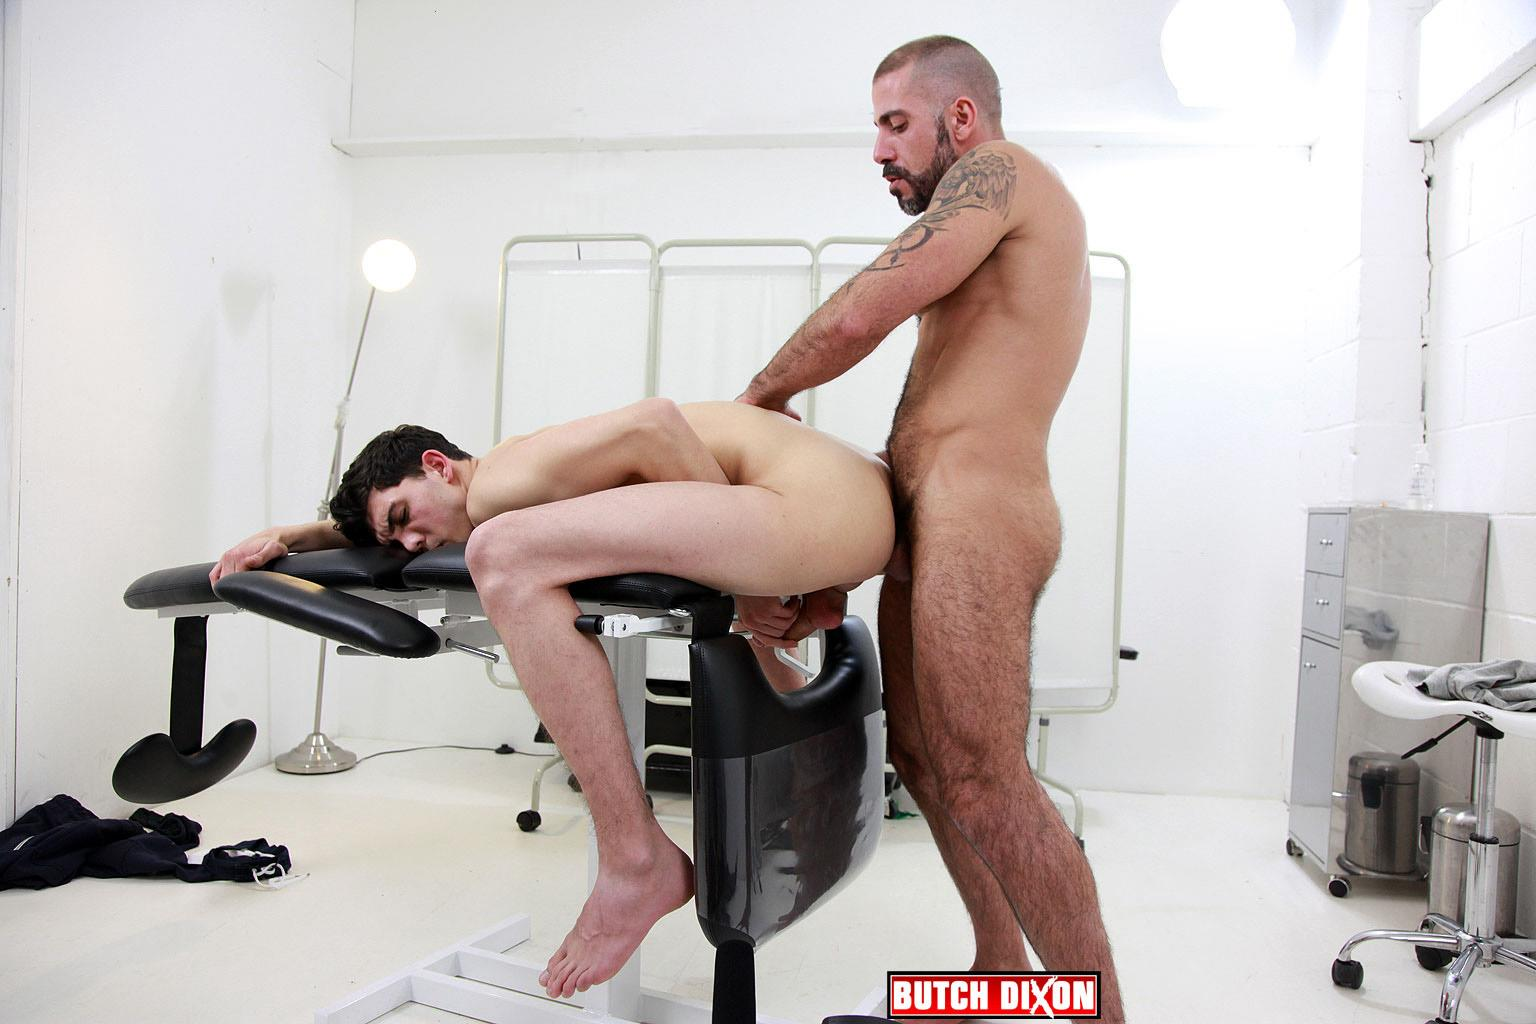 Butch-Dixon-Michel-Rudin-and-Luke-Tyler-Big-Uncut-Cock-Fucking-Amateur-Gay-Porn-21 Hairy Muscle Hunk With A Big Uncut Cock Fucking A Smooth Younger Guy